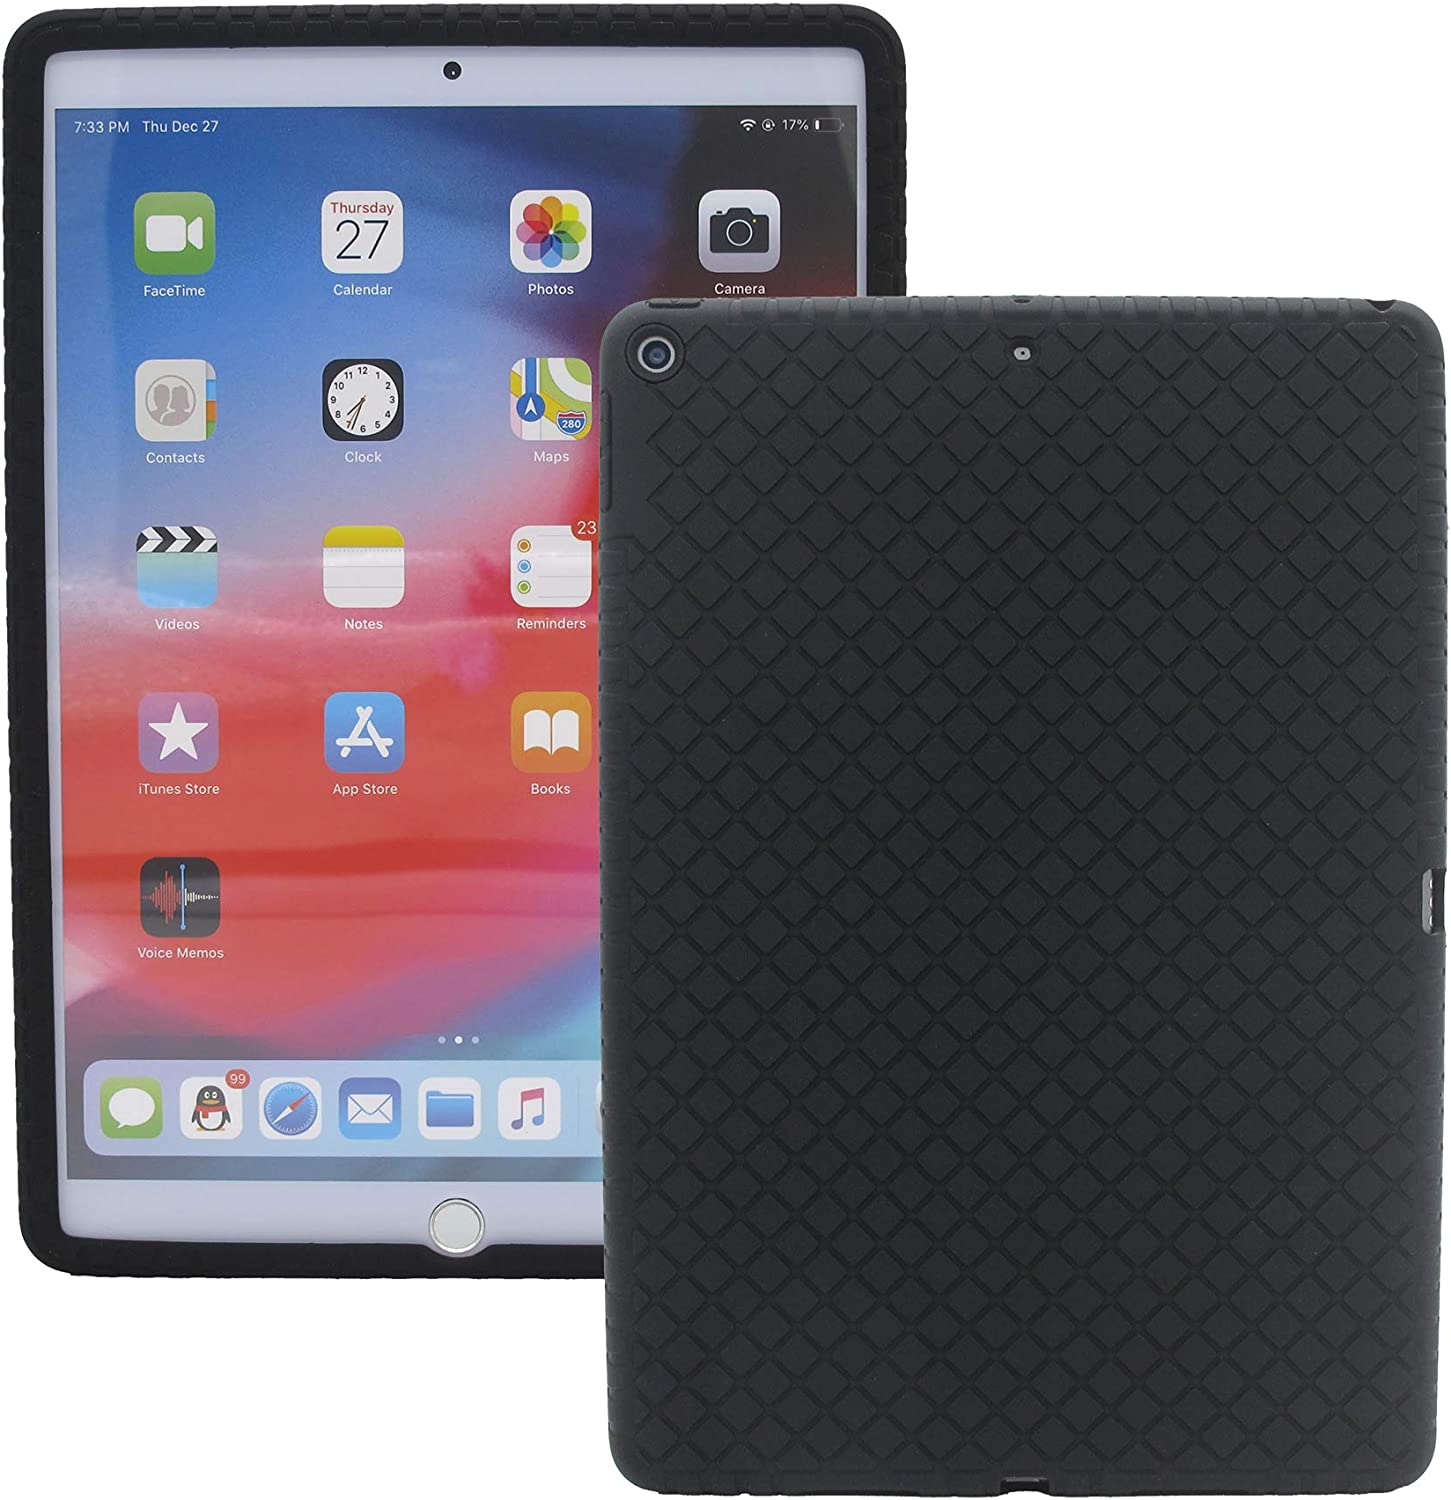 Veamor iPad 10.2 Inch Silicone Back Case Cover, Anti Slip Rubber Protective Skin Soft Bumper for Apple iPad 8th (2020) / 7th Gen (2019), Kids Friendly/Lightweight/Ultra Slim/Shockproof (Black)